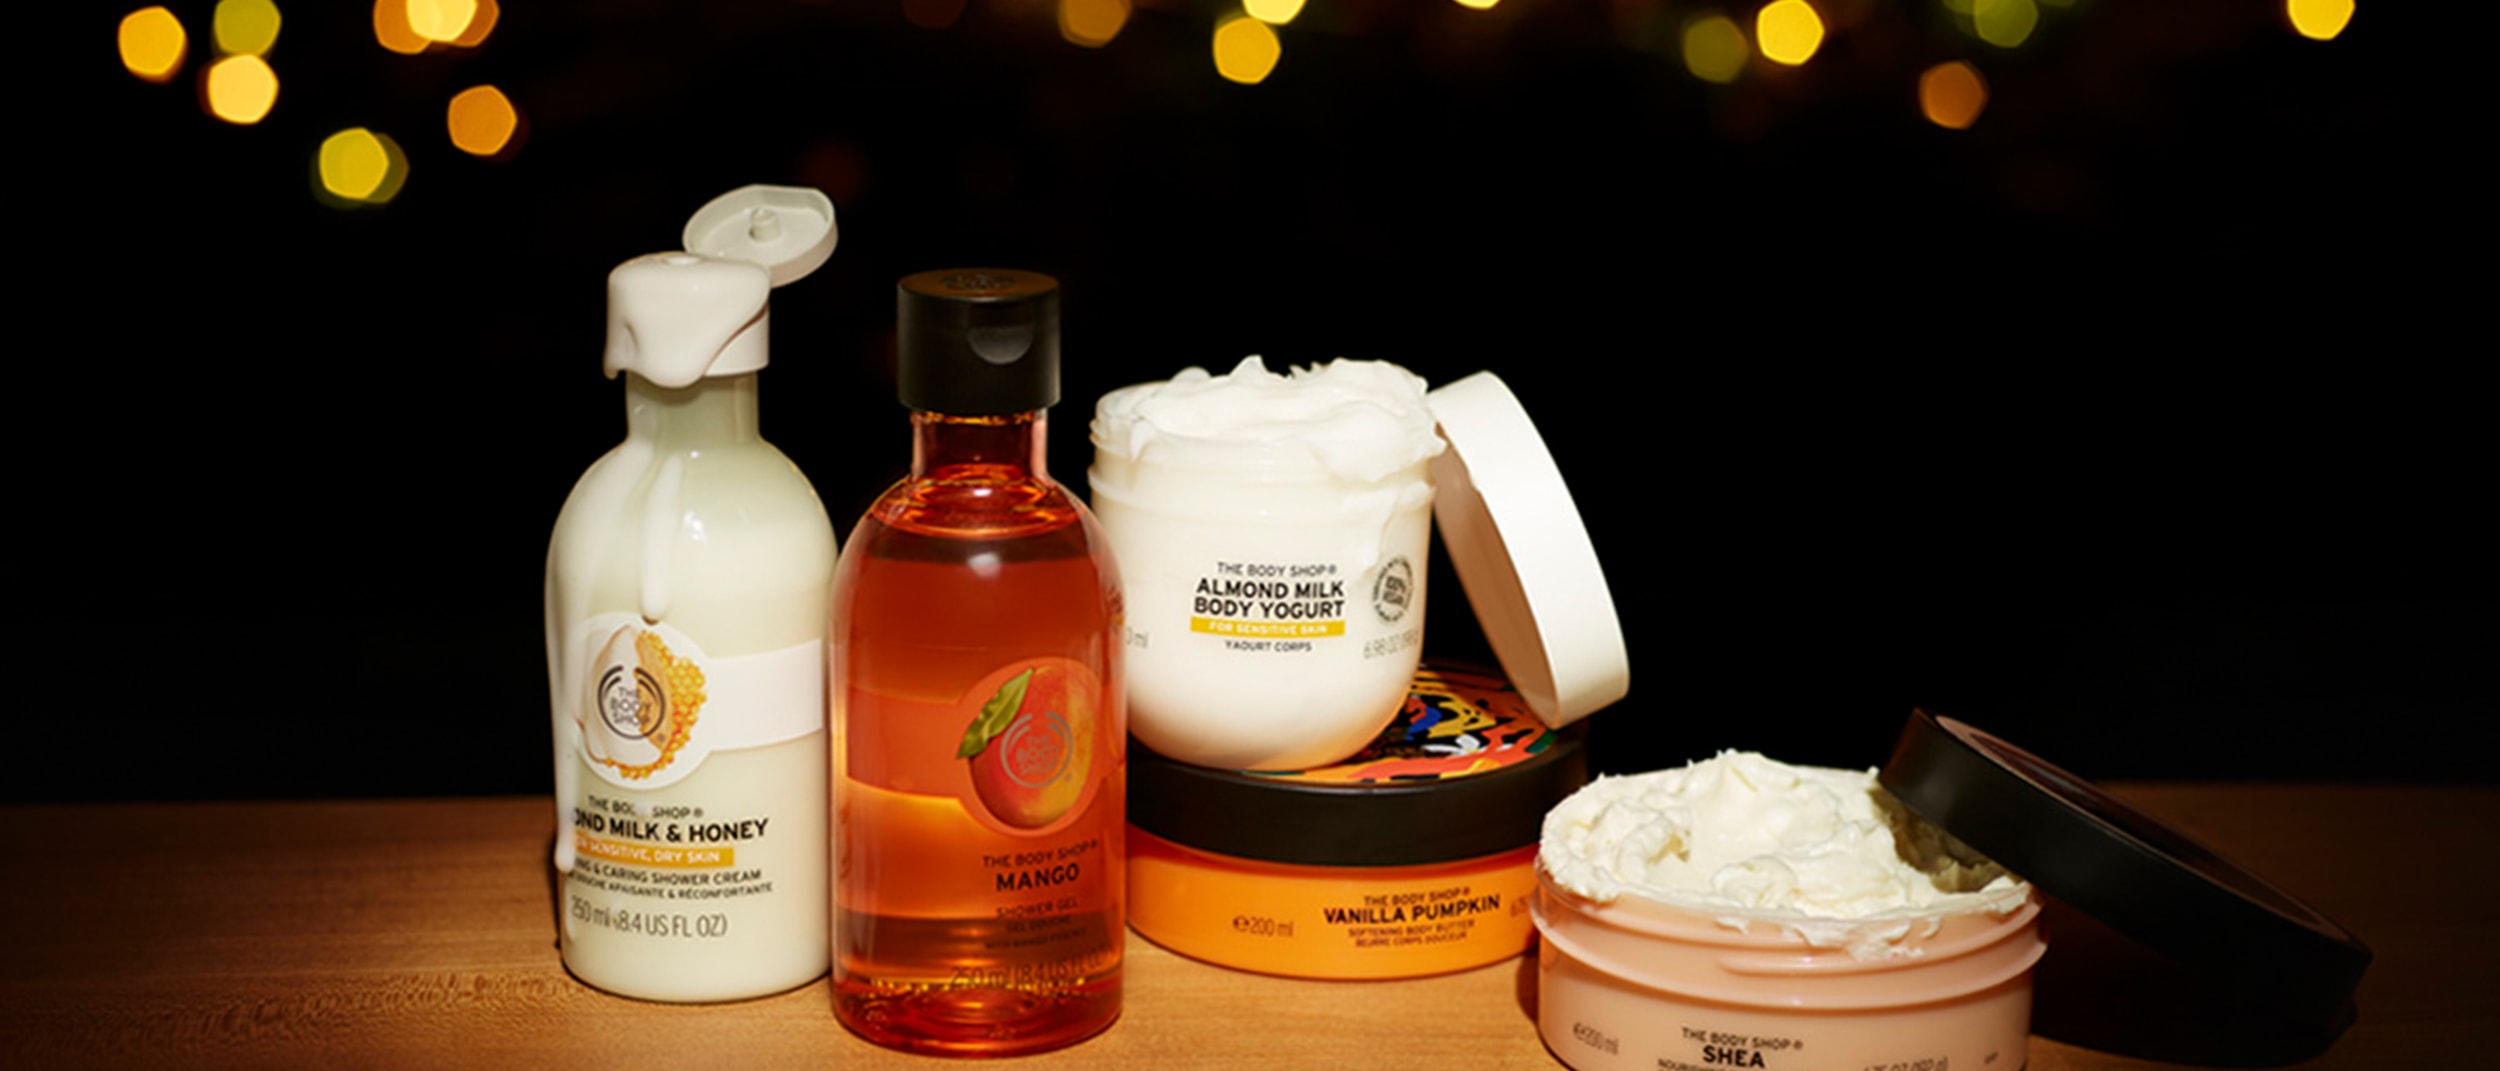 The Body Shop: Up to 60% off selected products